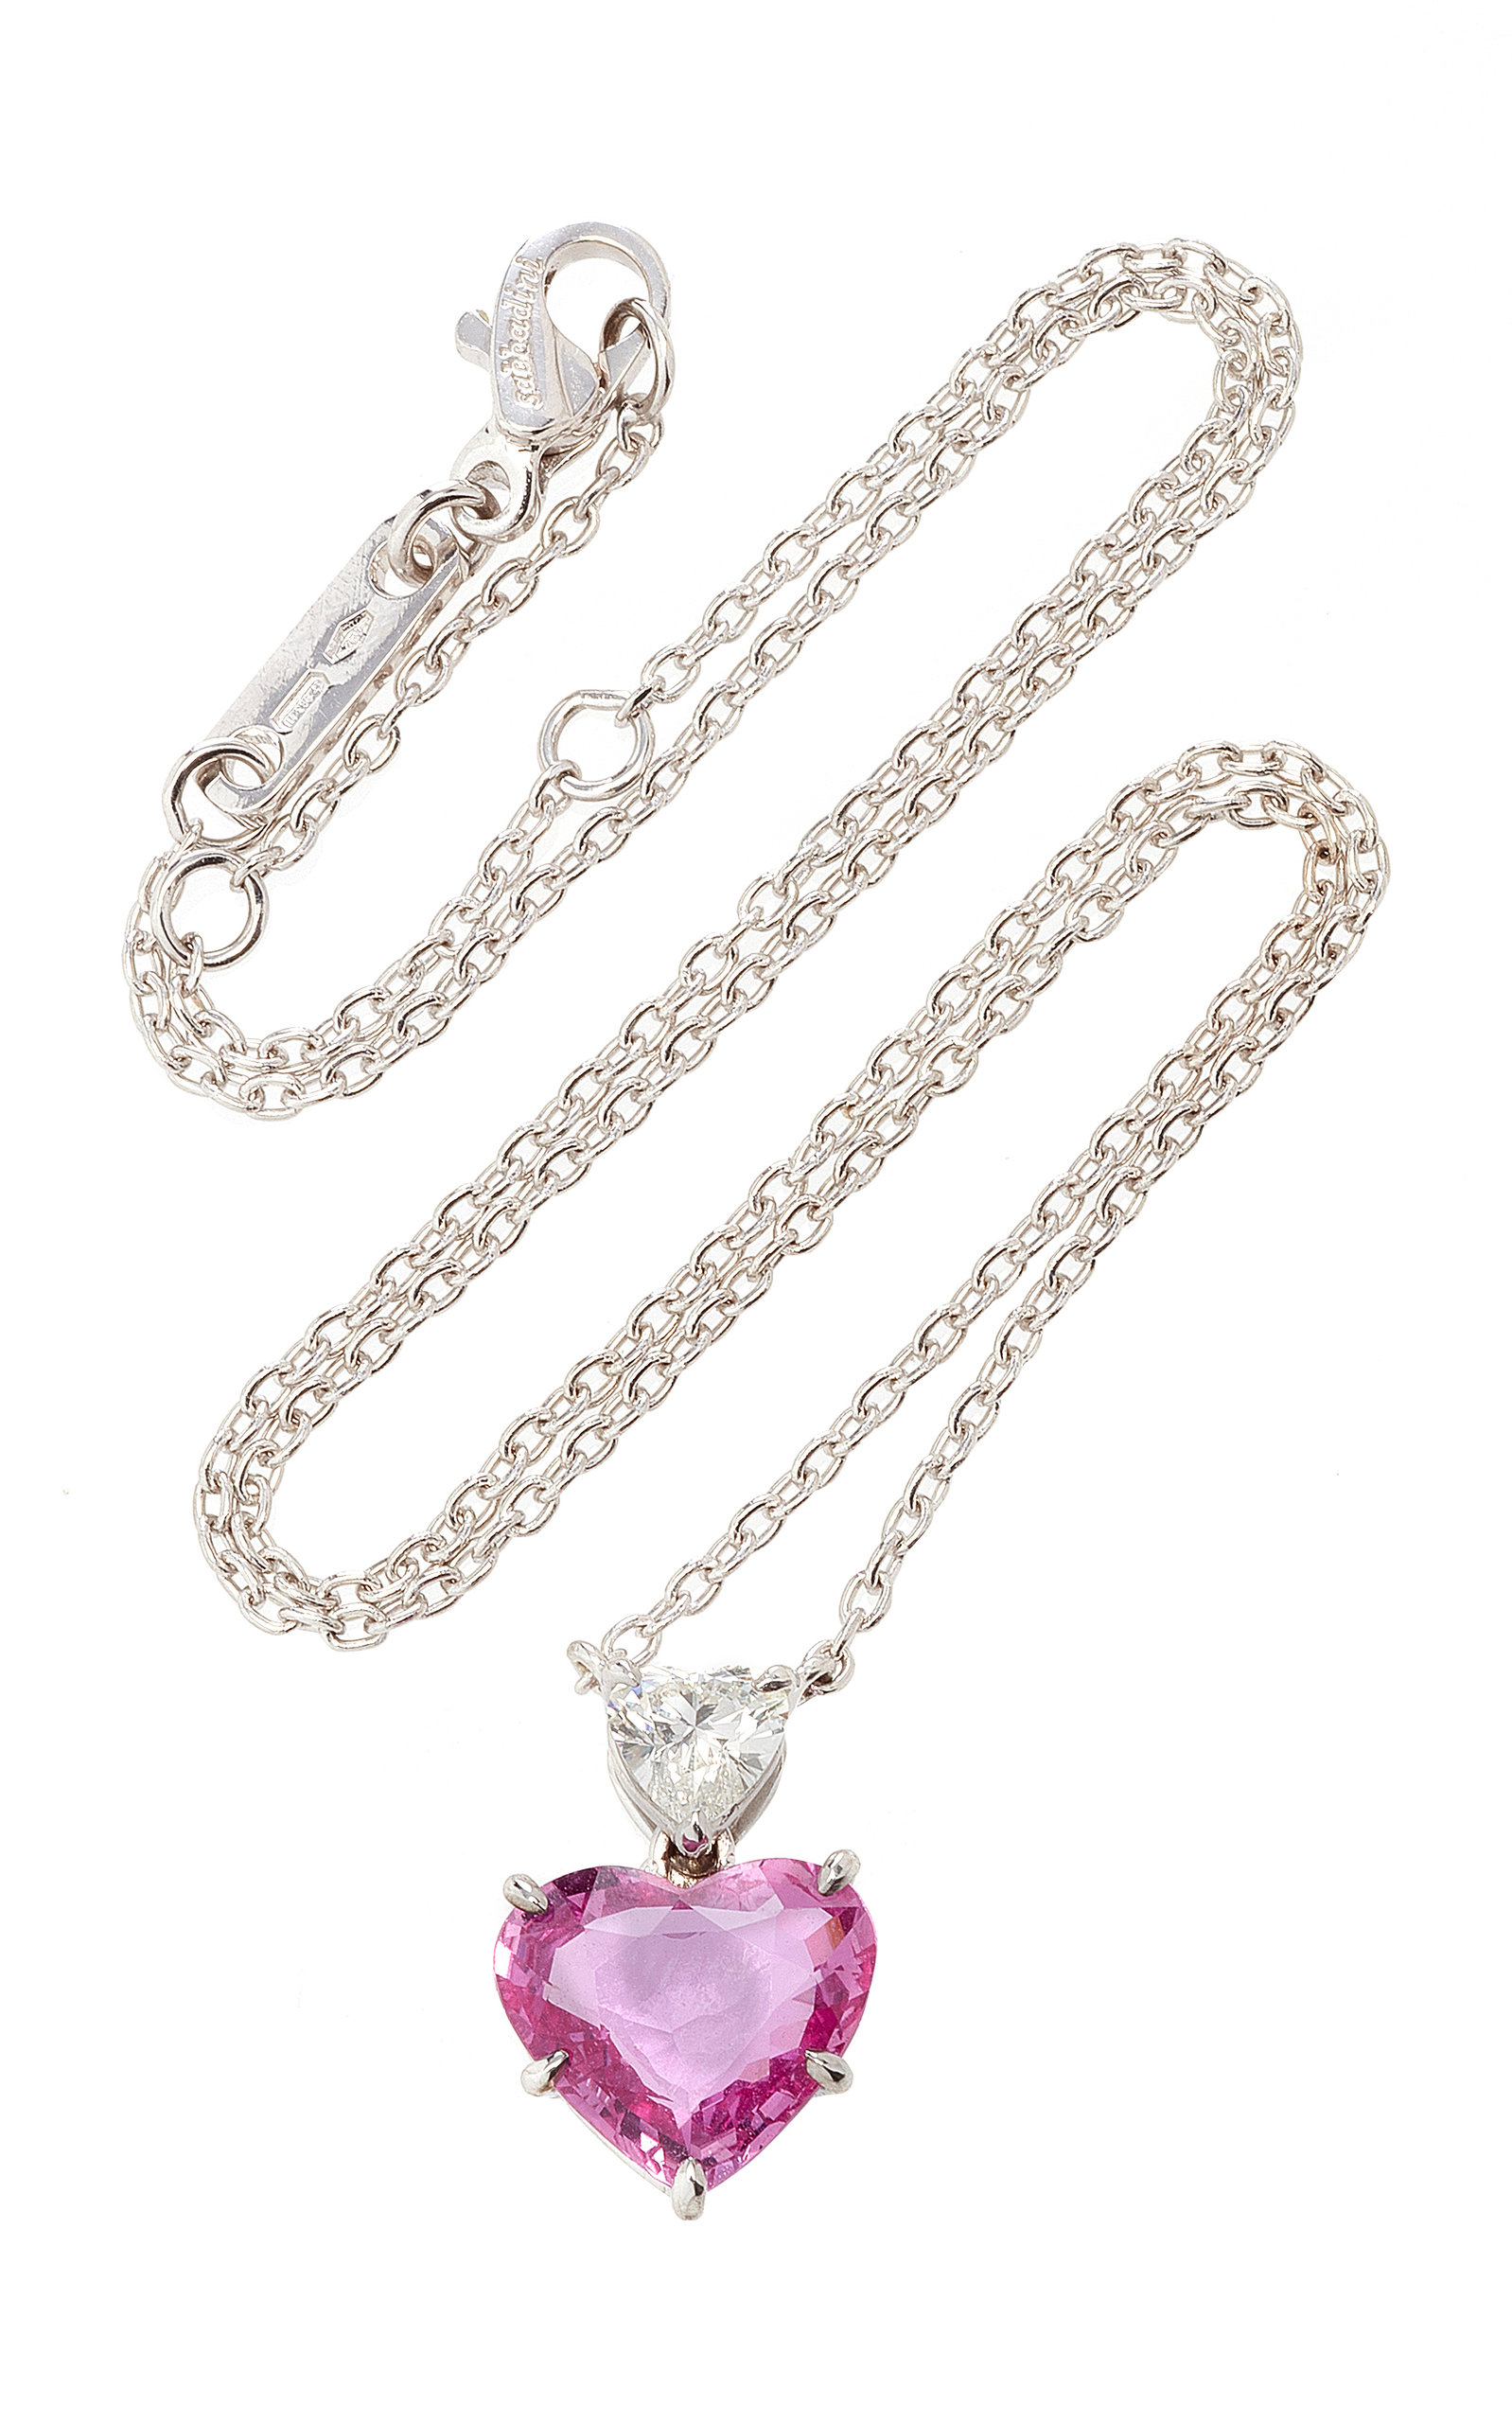 SABBADINI White Gold Diamond And Sapphire Necklace in Pink